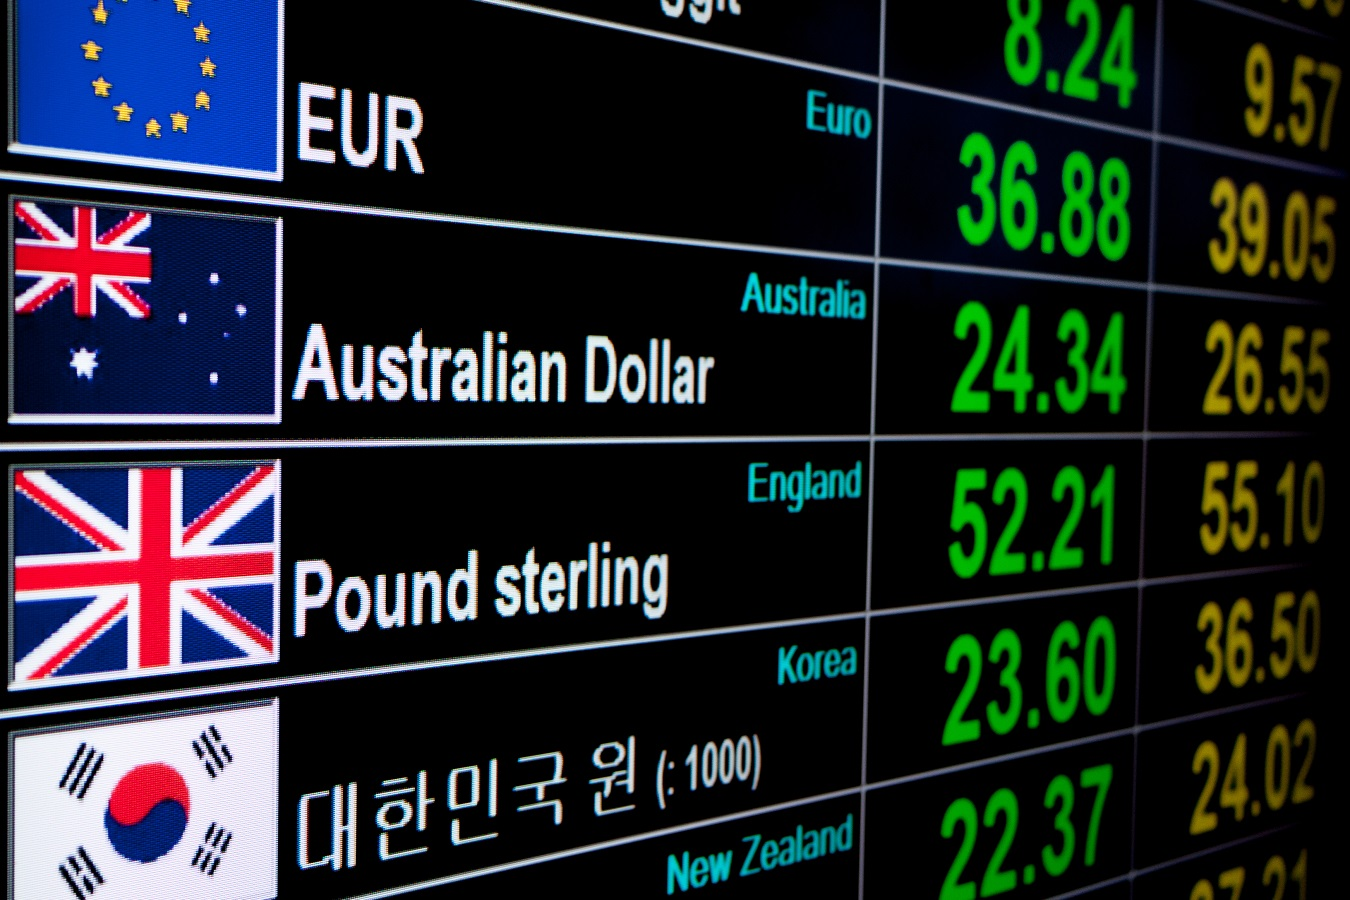 How are exchange rates set and what influences them?